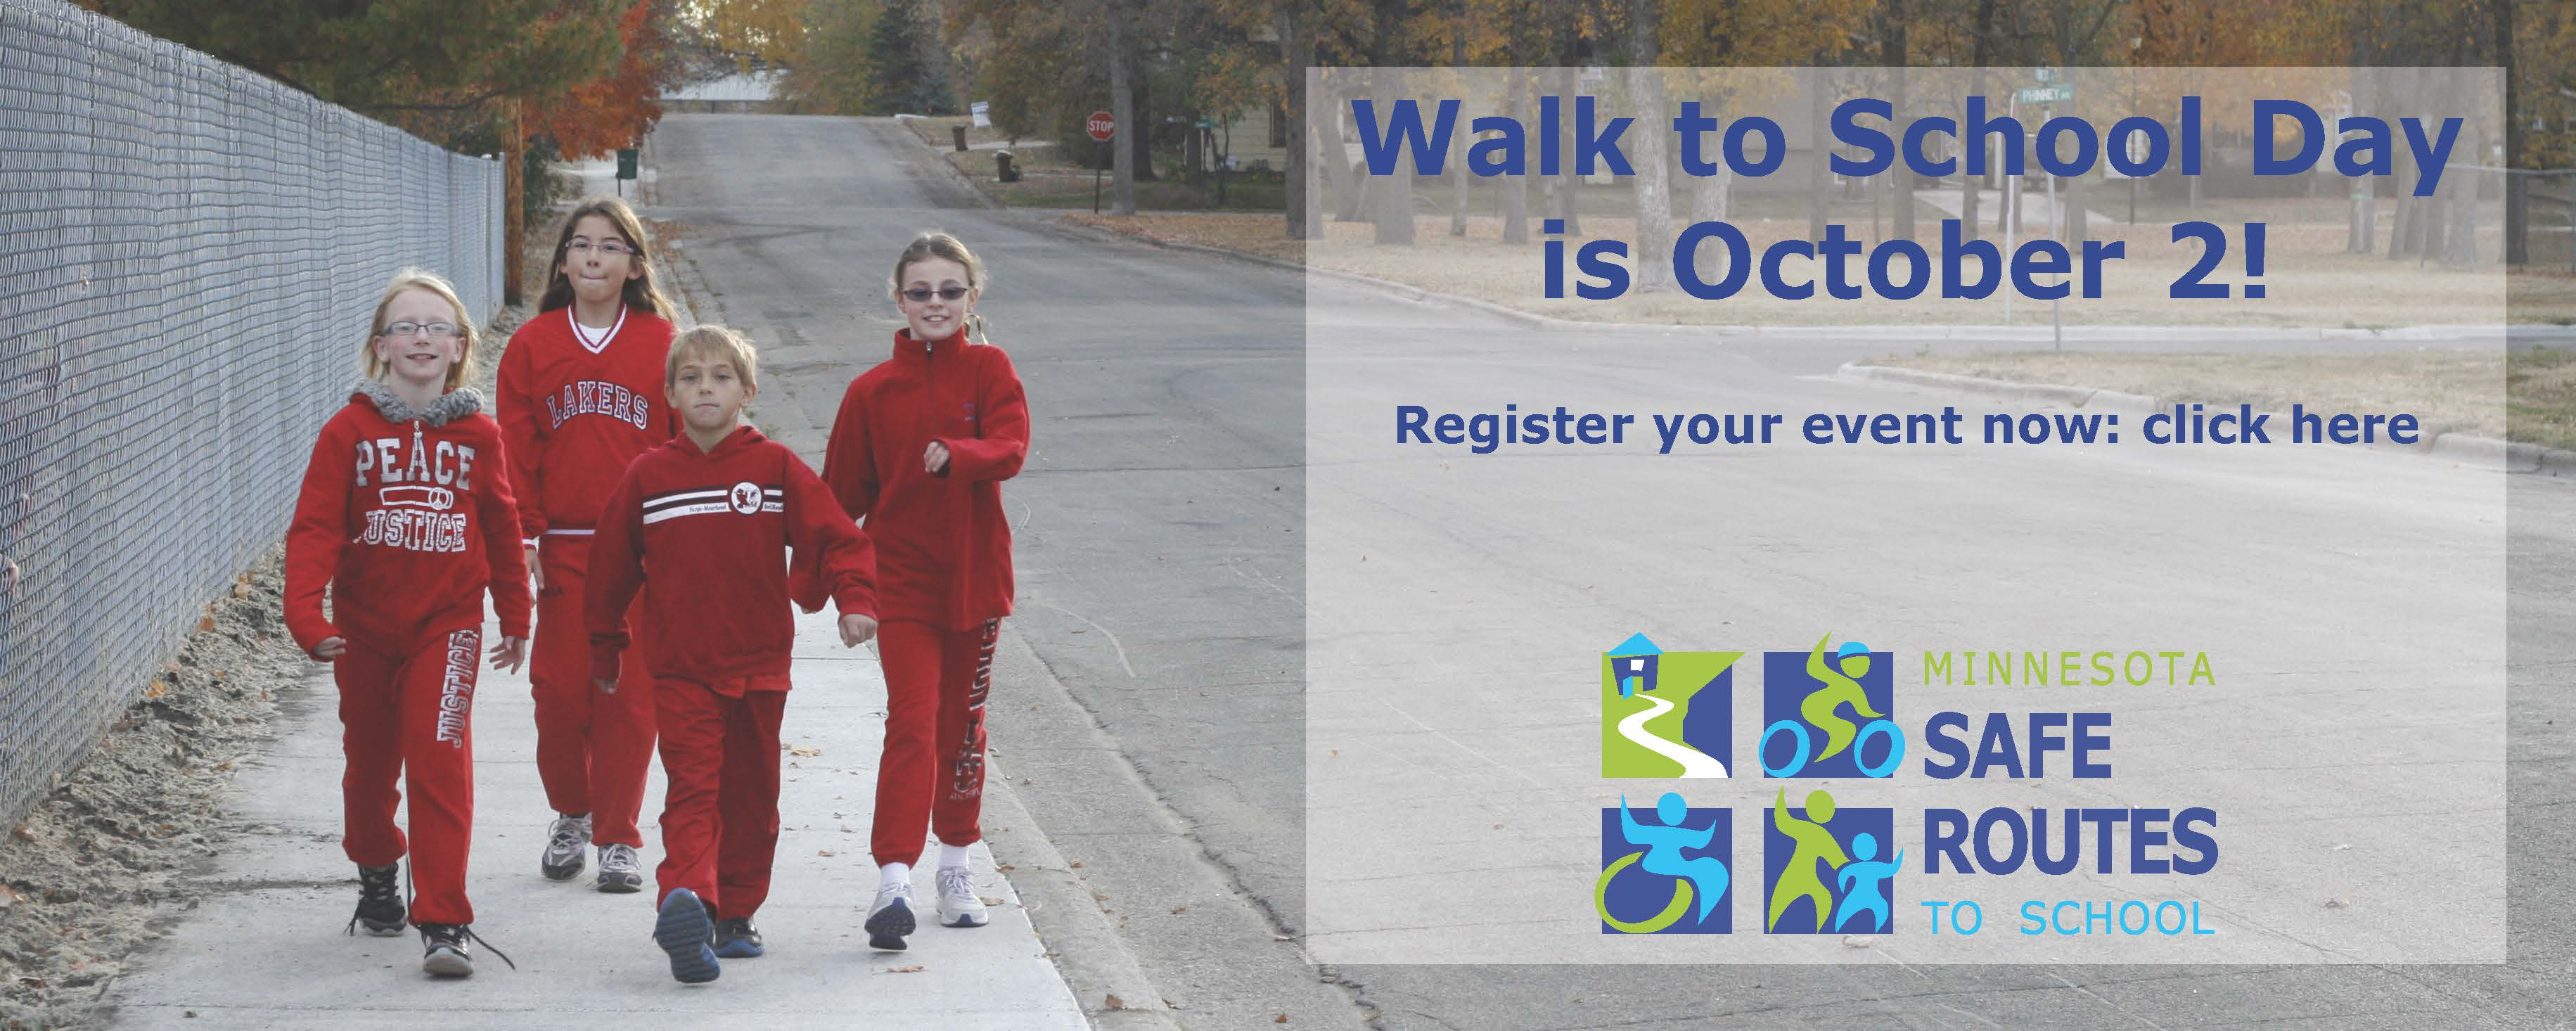 image of Walk to School Day promotional materials